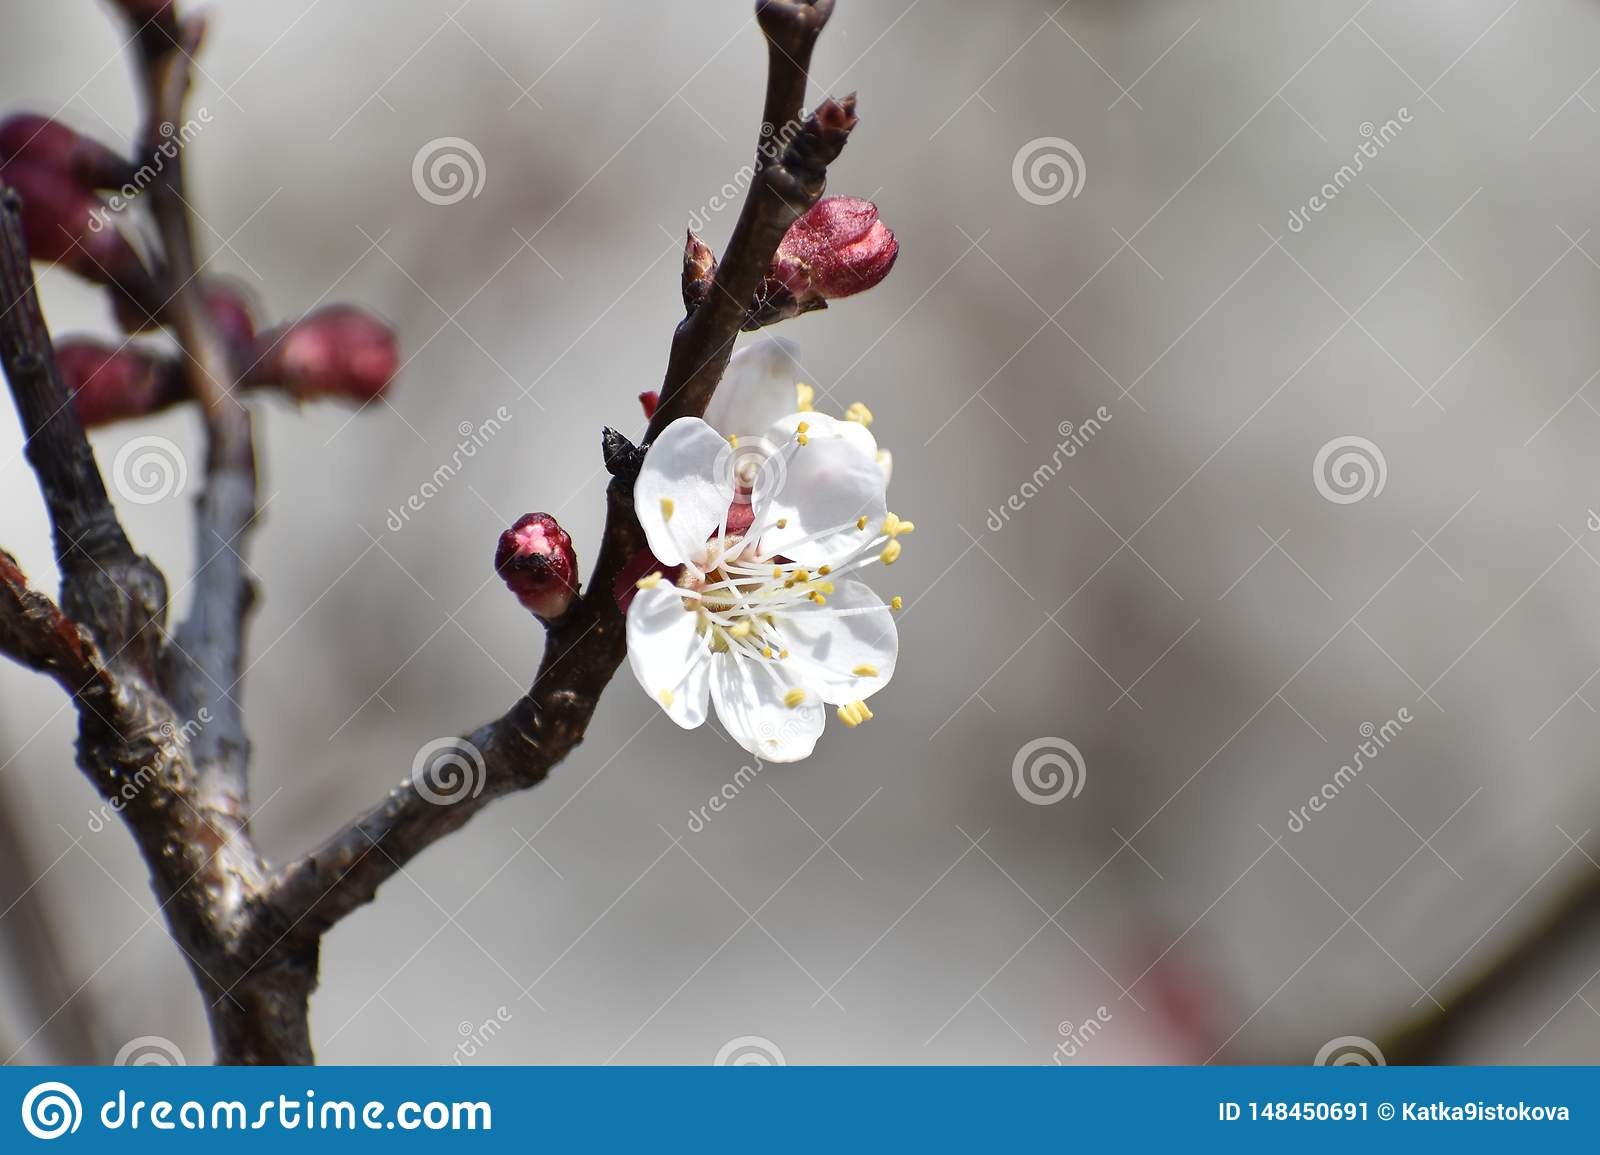 Cherry tree blossom flower - blooming cherry tree